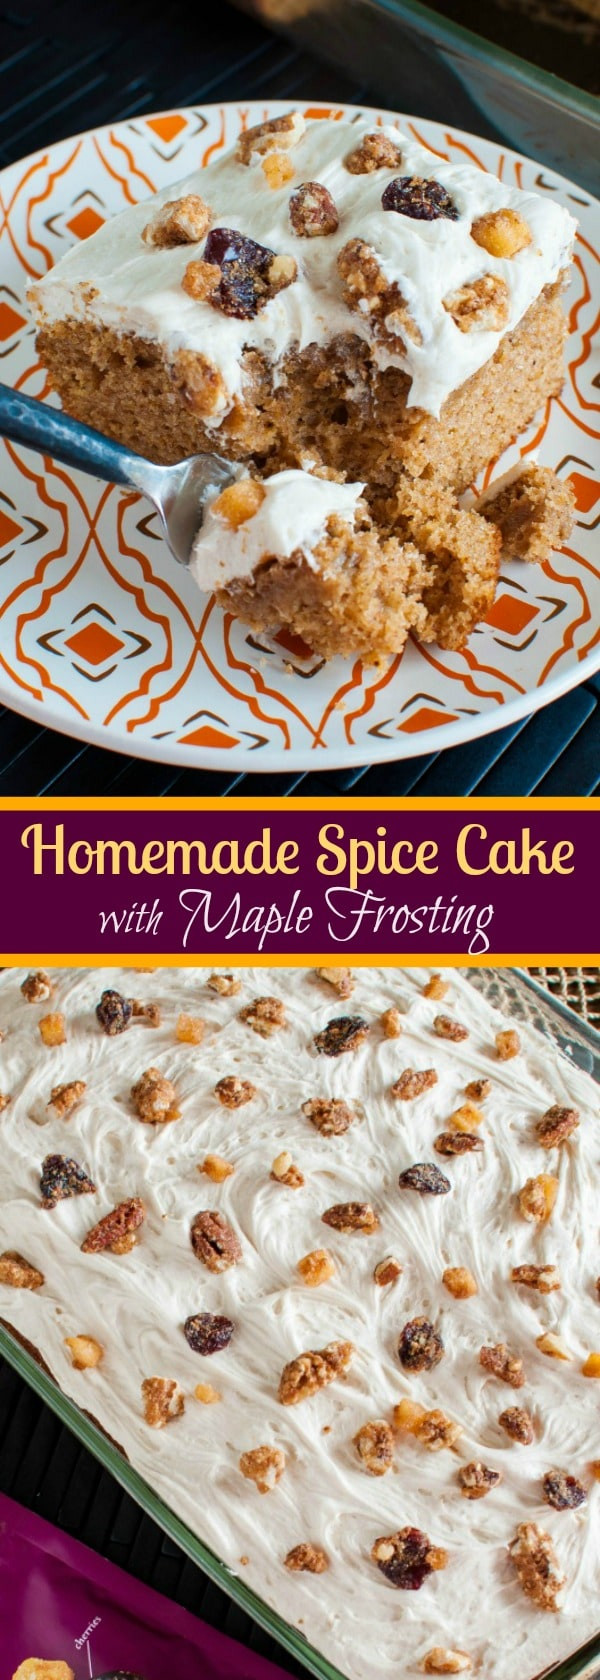 Christmas Spice Cake  Homemade Spice Cake with Maple Frosting Back for Seconds